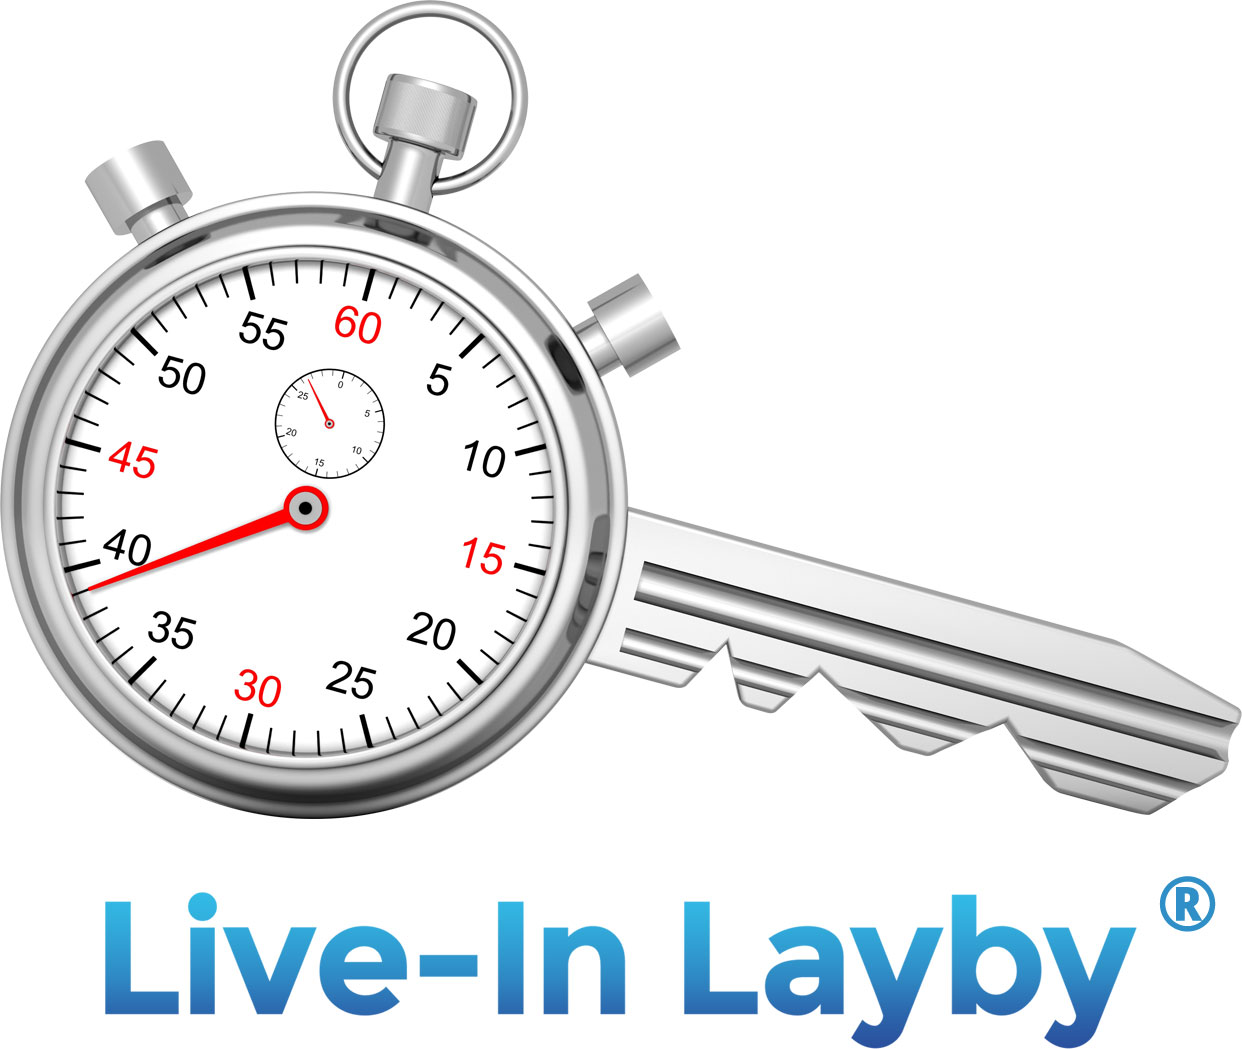 Live-In Layby